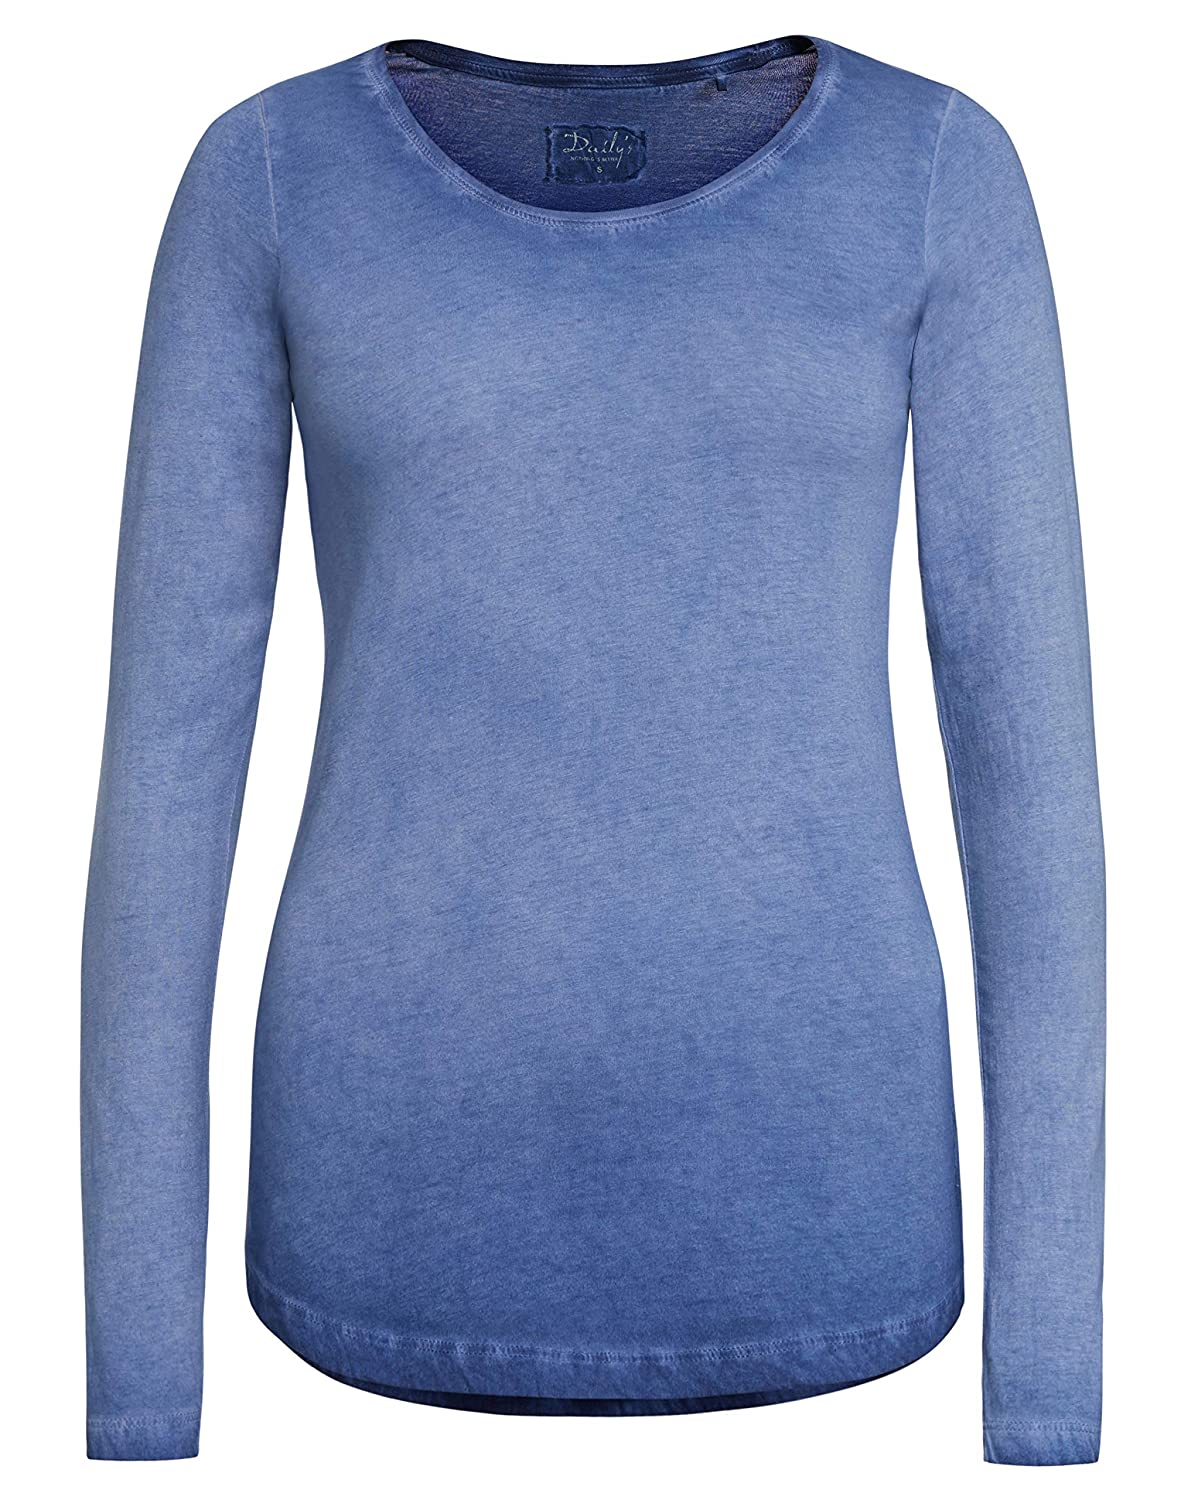 B DAILY`S NOTHING`S BETTER BY S W ANN CPD: Longsleeve aus Biobaumwolle